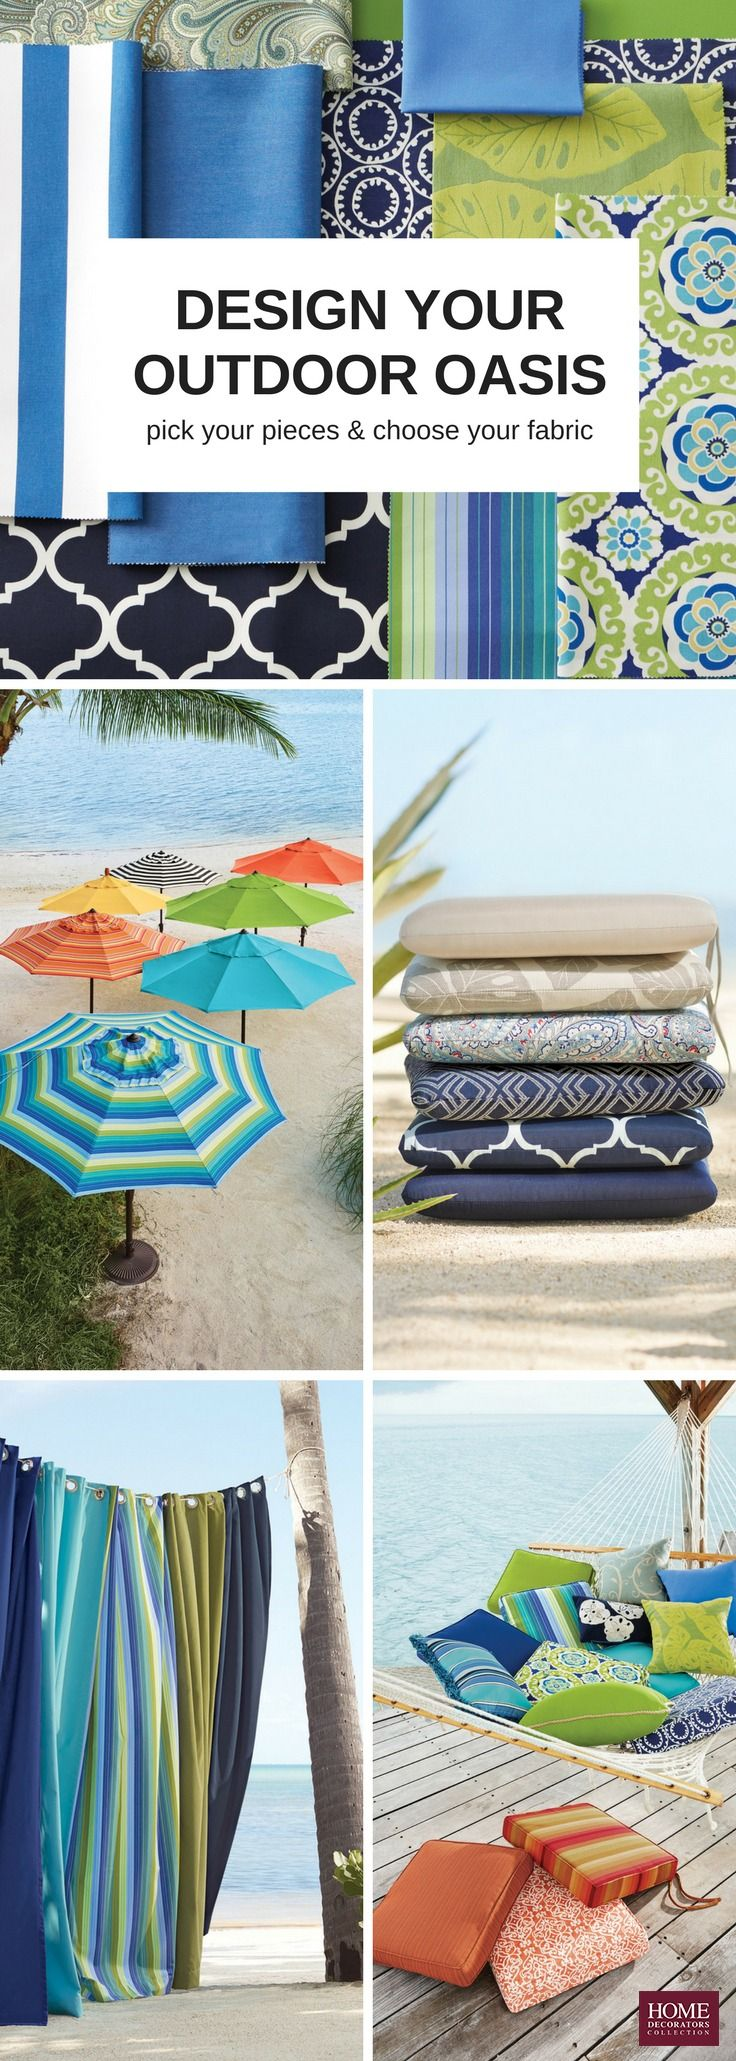 471 best outdoor images on pinterest shop home home depot and browse home decorators outdoor decor selections including outdoor benches outdoor cushions outdoor bar stools and a variety of outdoor furniture and